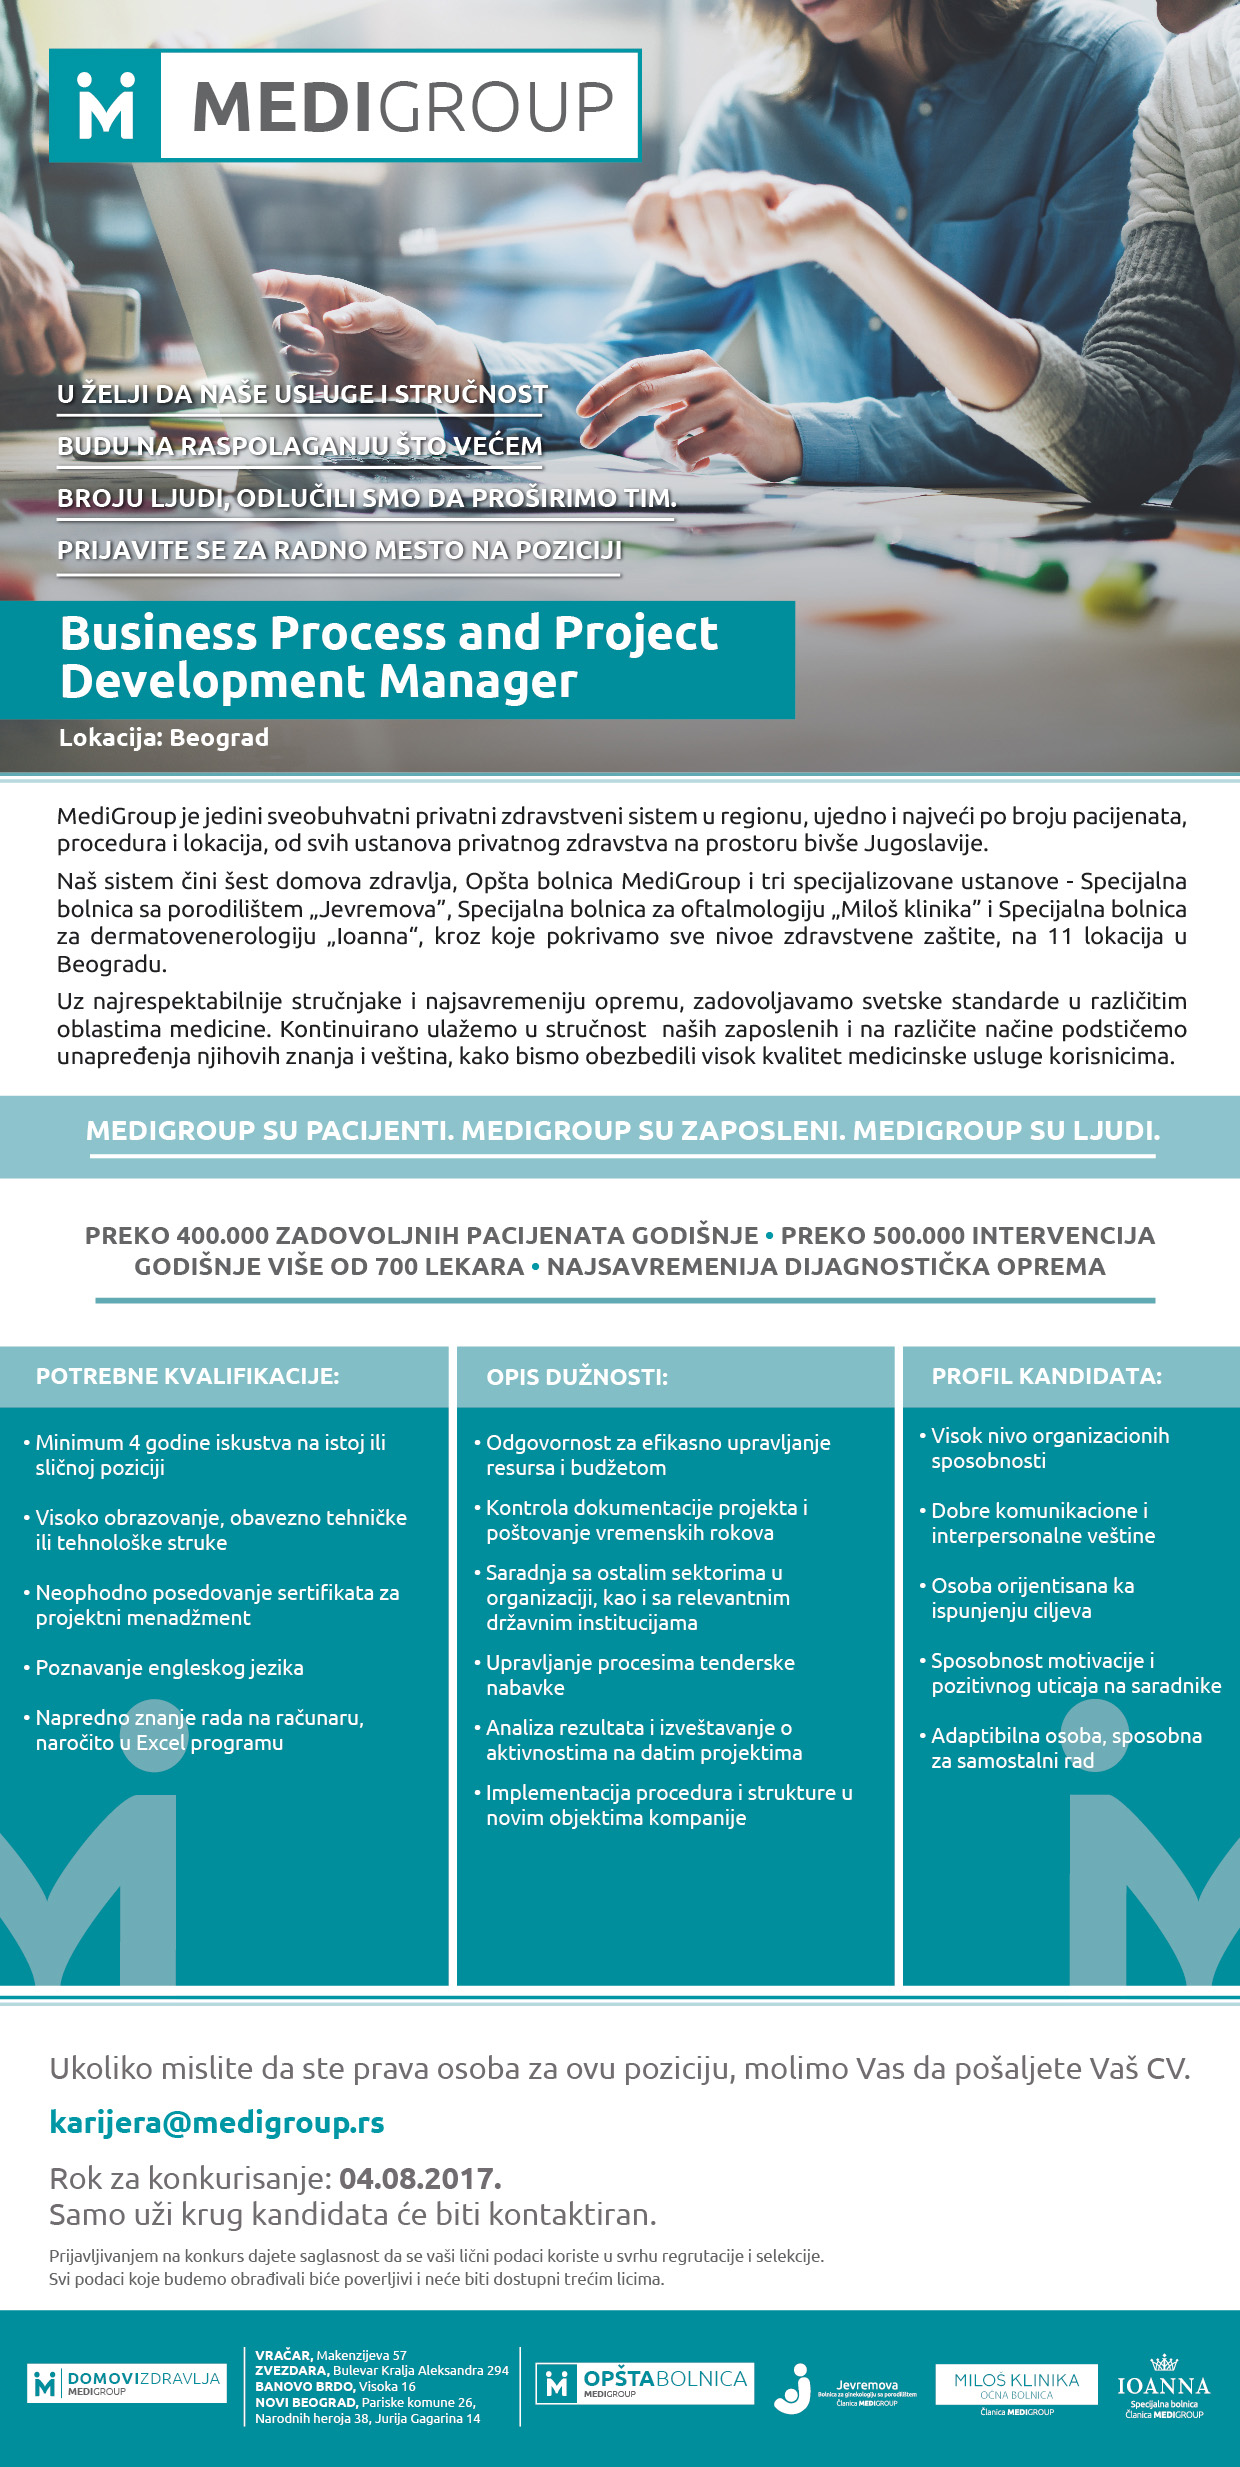 Project Development Manager